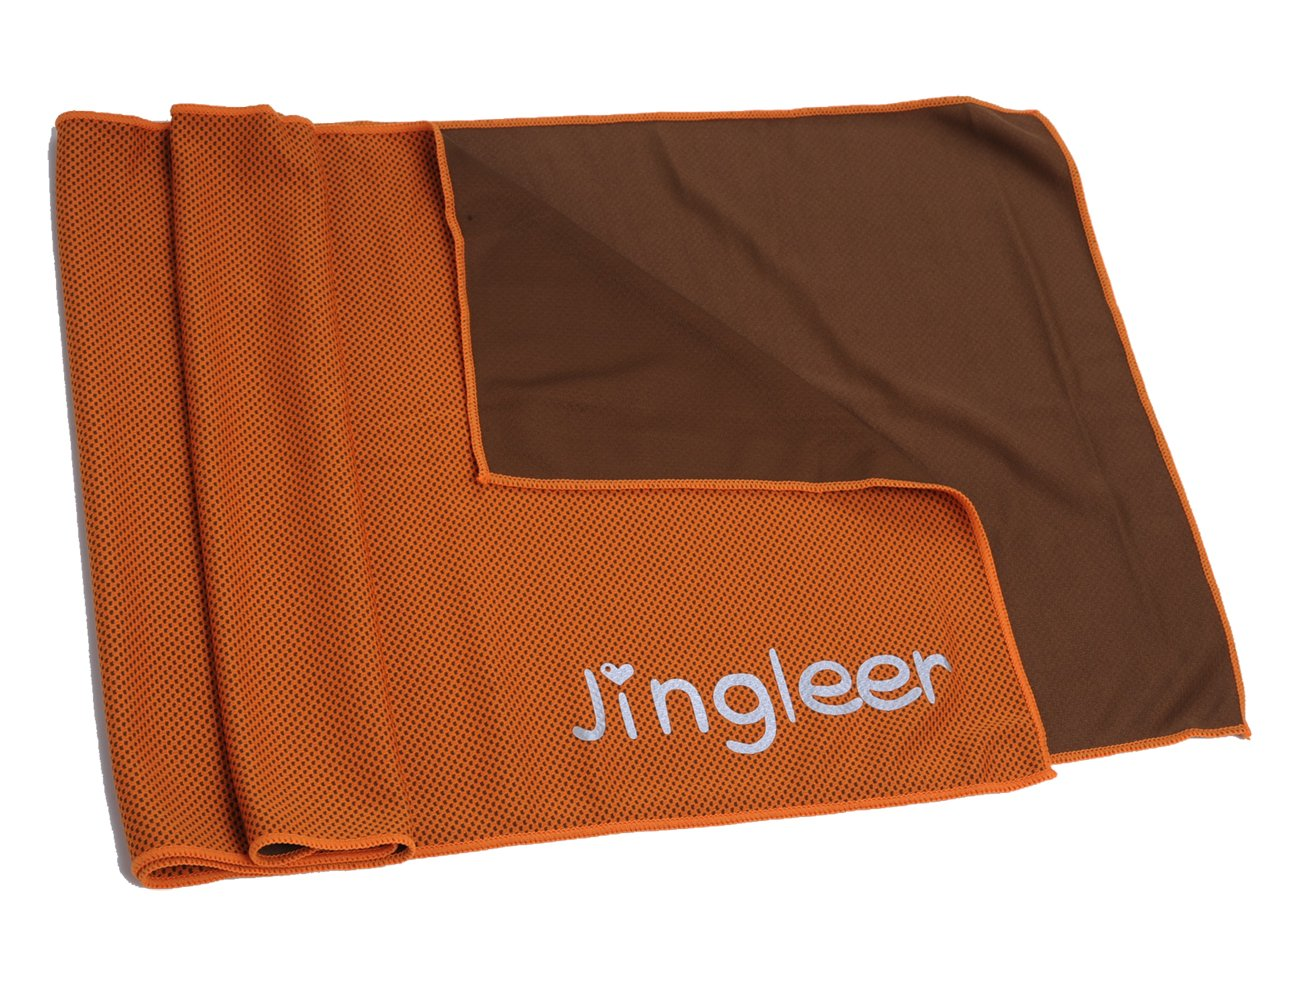 Cooling Towel for Sports, Instant Relief,Workout, Fitness, Gym, Yoga, Pilates, Travel, Camping 40